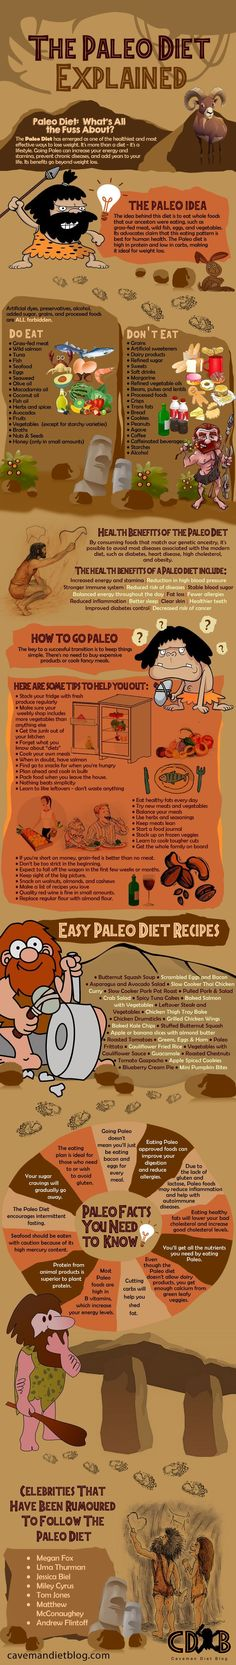 1eb5b9a828 The Paleo Diet Plan has to be the easiest of all to follow. You eat